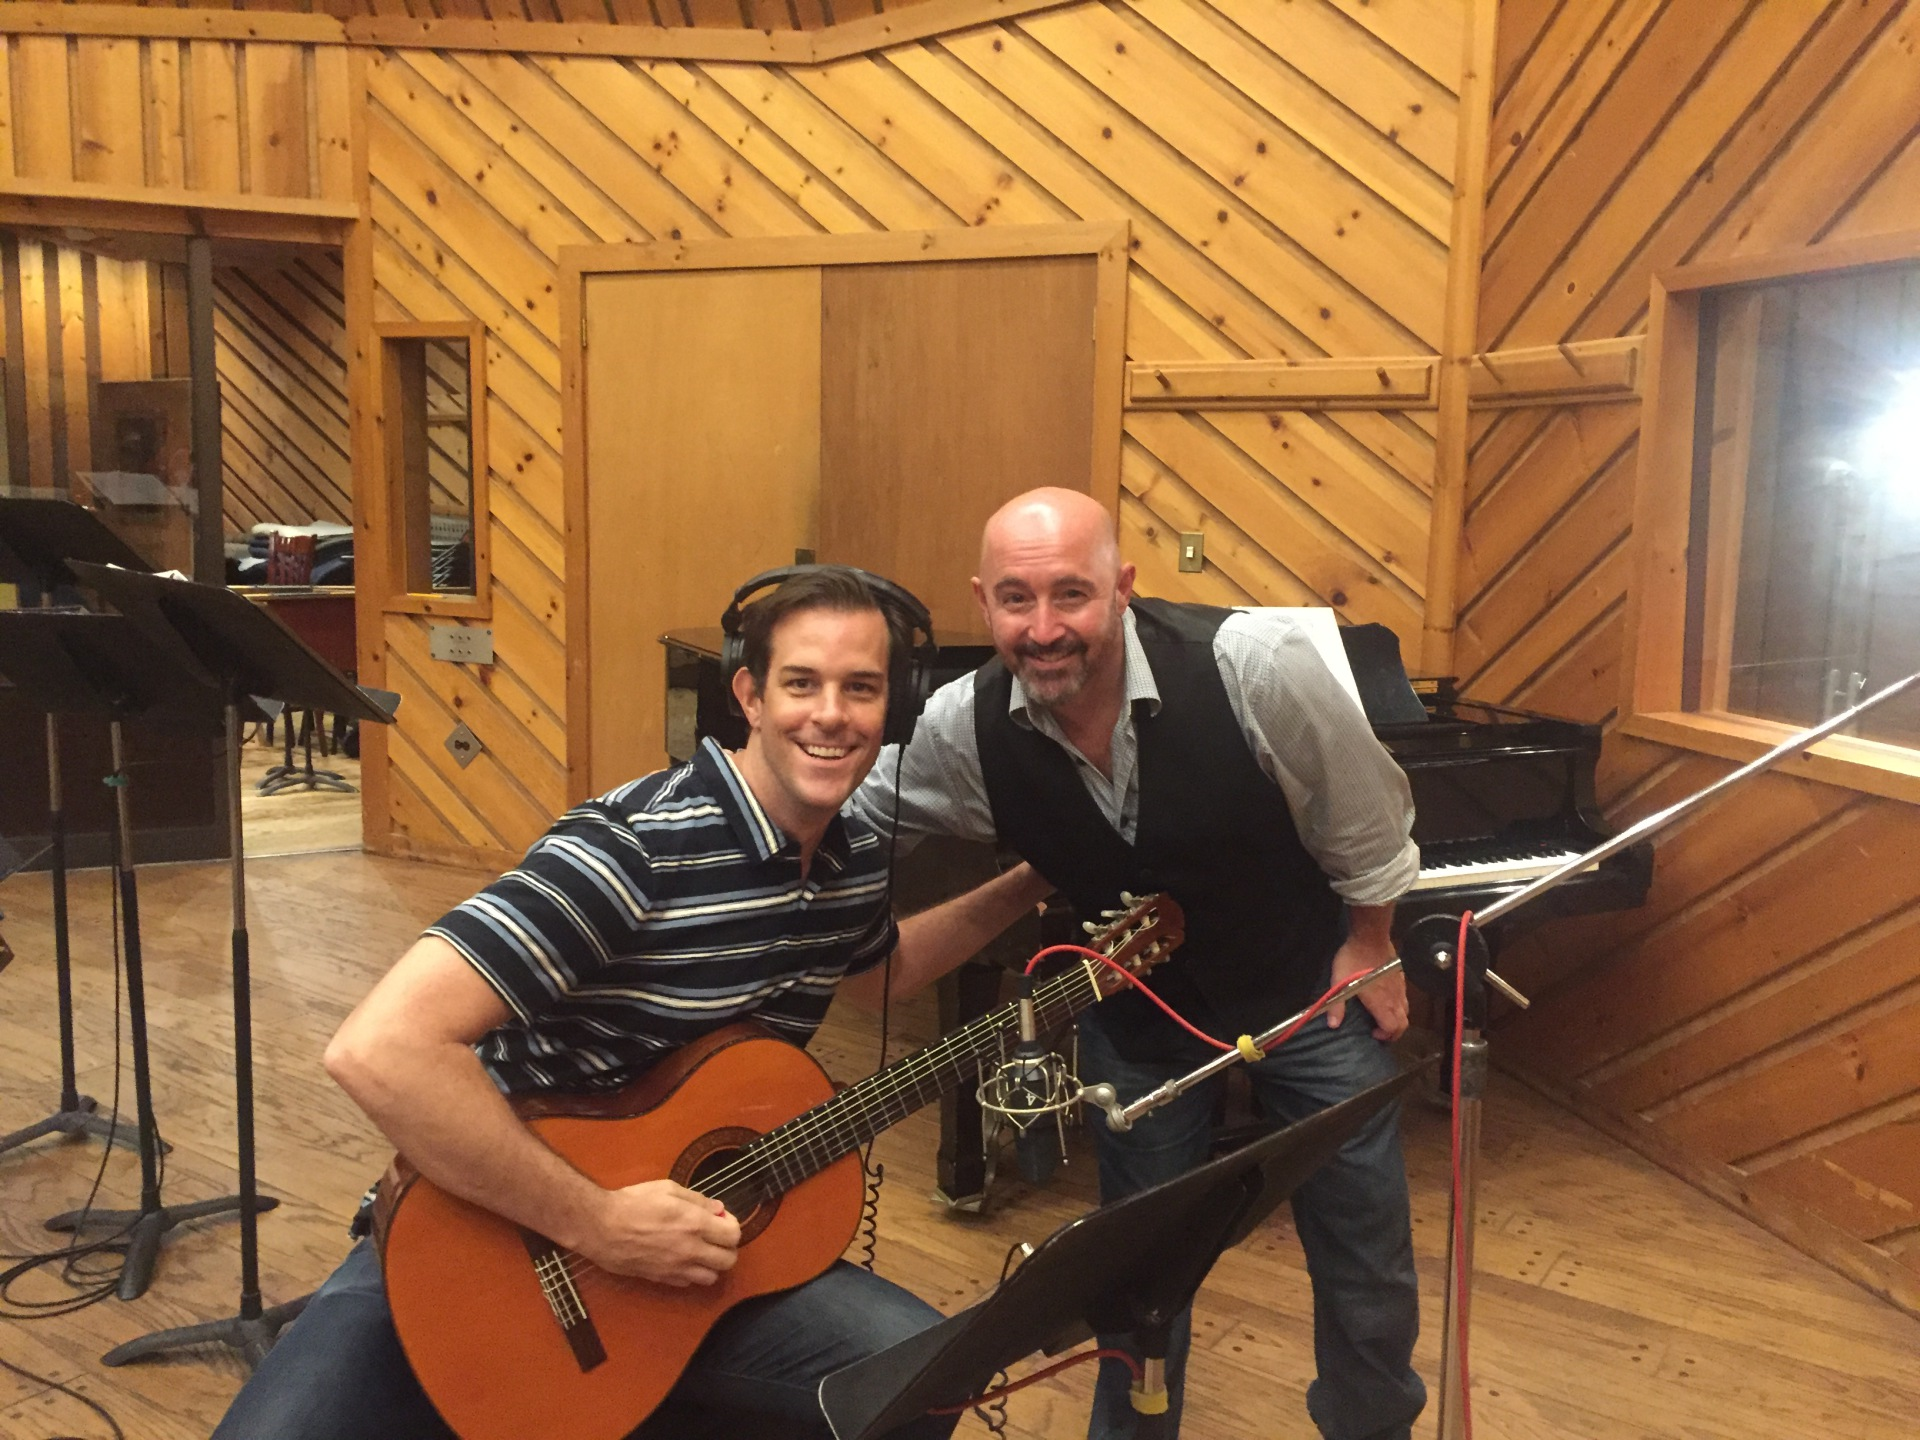 Laying down Guitar tracks for the Hunchback of Notre Dame Cast album